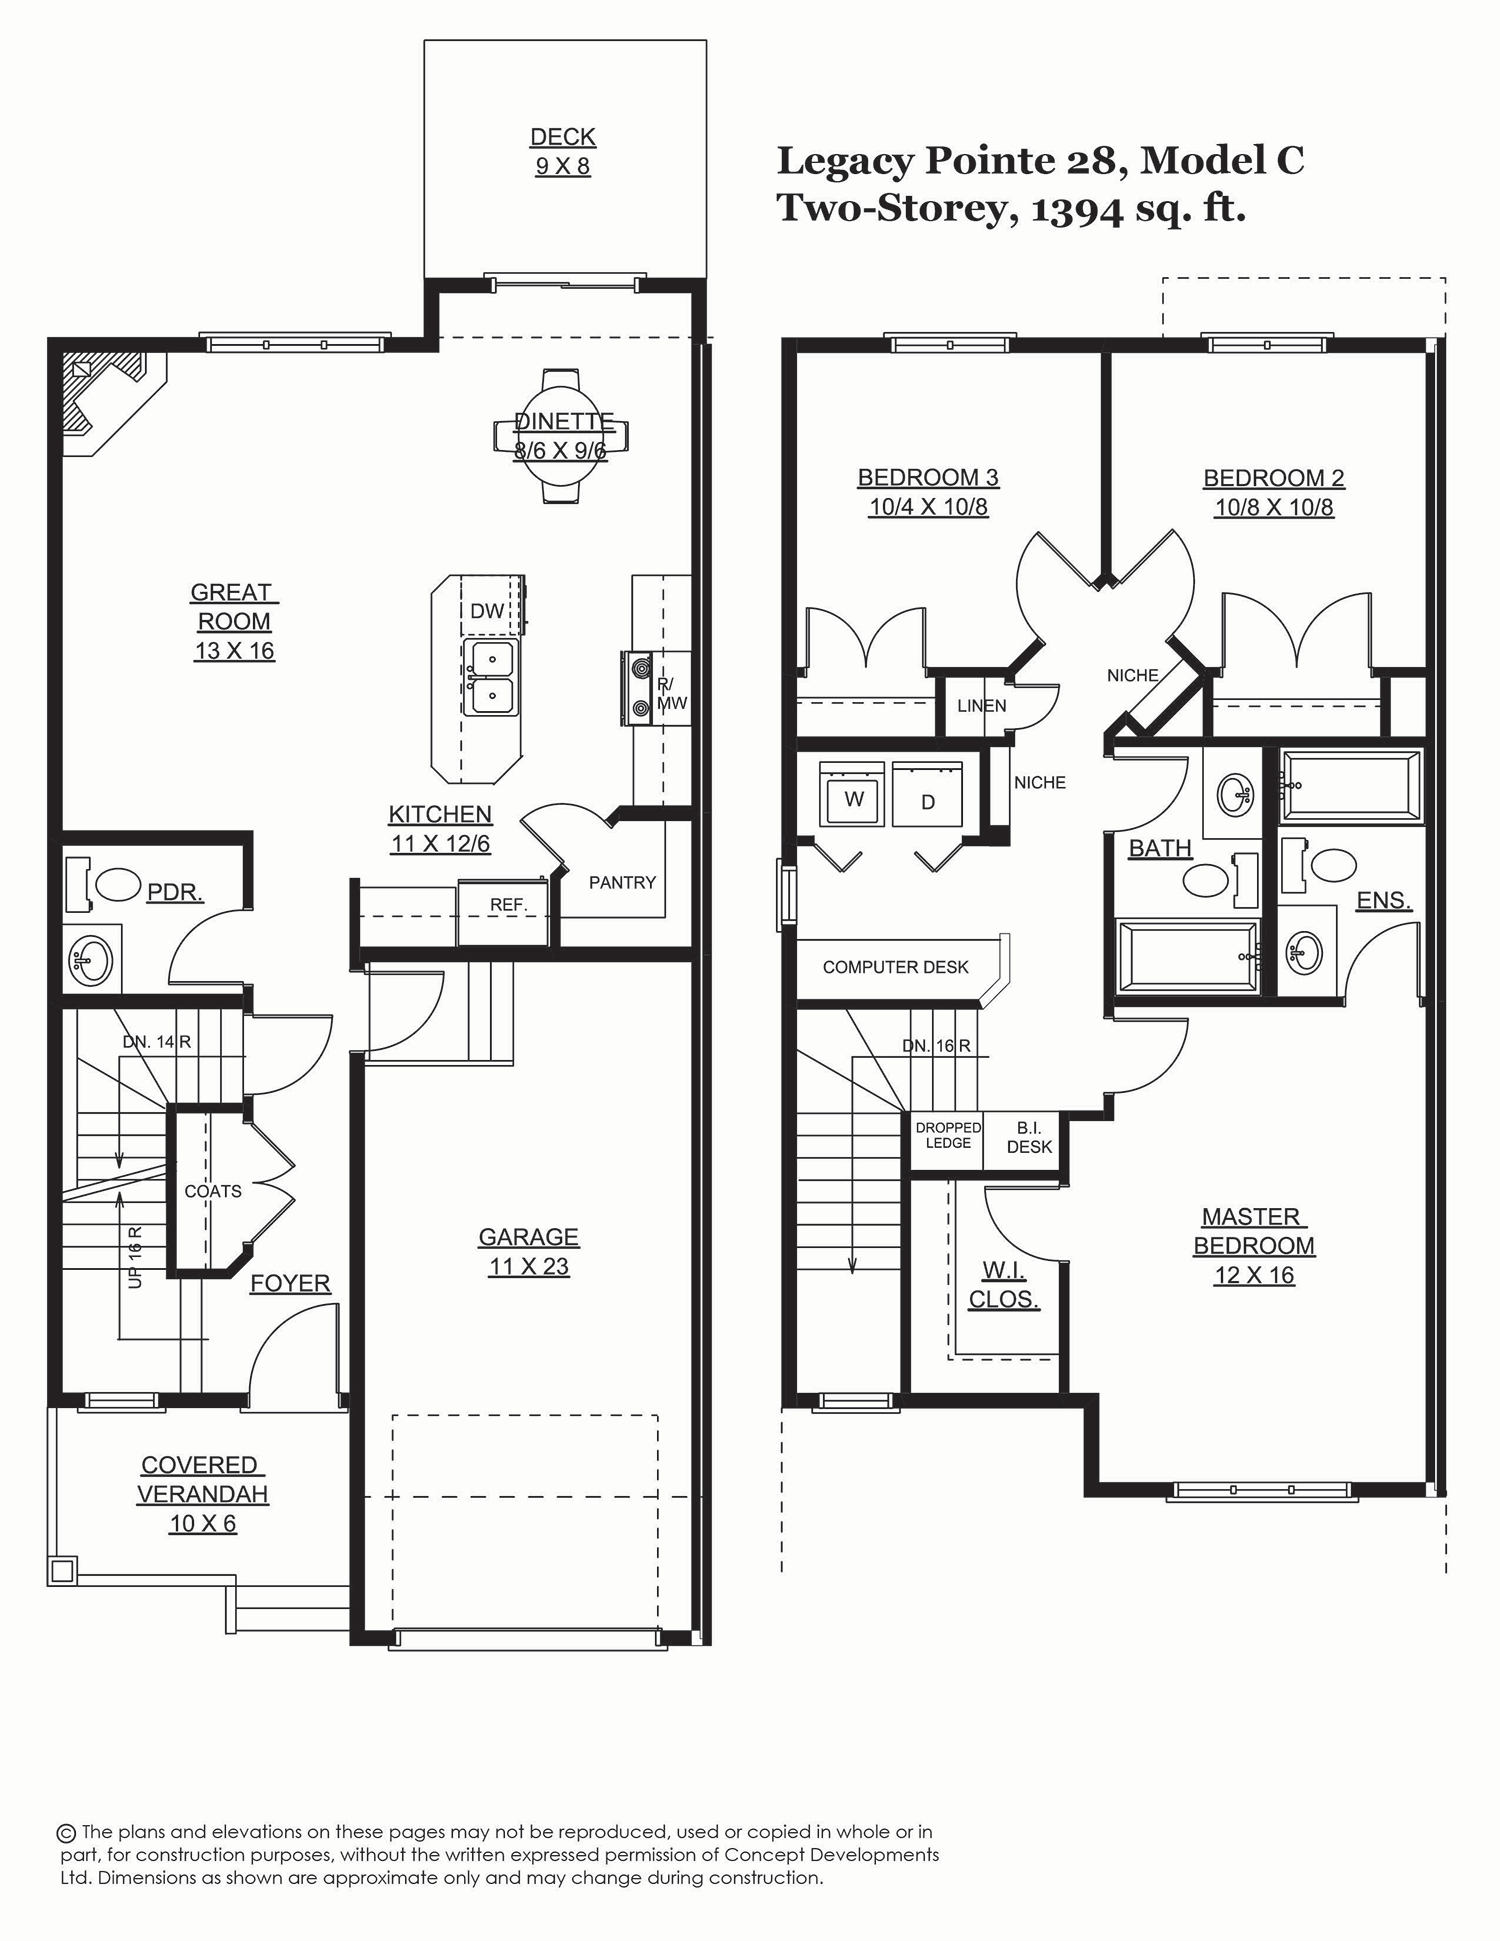 Legacy Pointe 28, 1394 sq. ft.